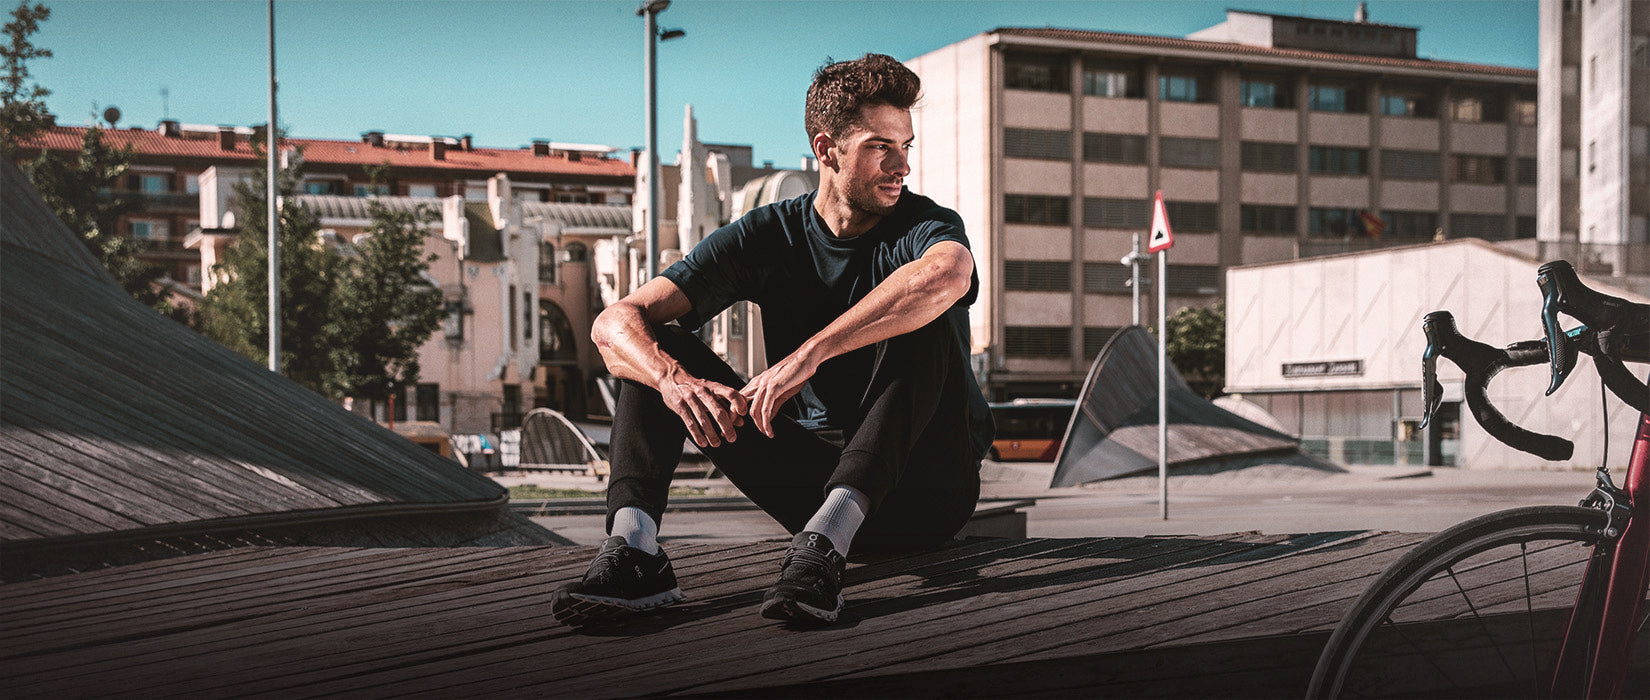 Katusha urban cycling apparel - Commuter Men's Pants and Shorts